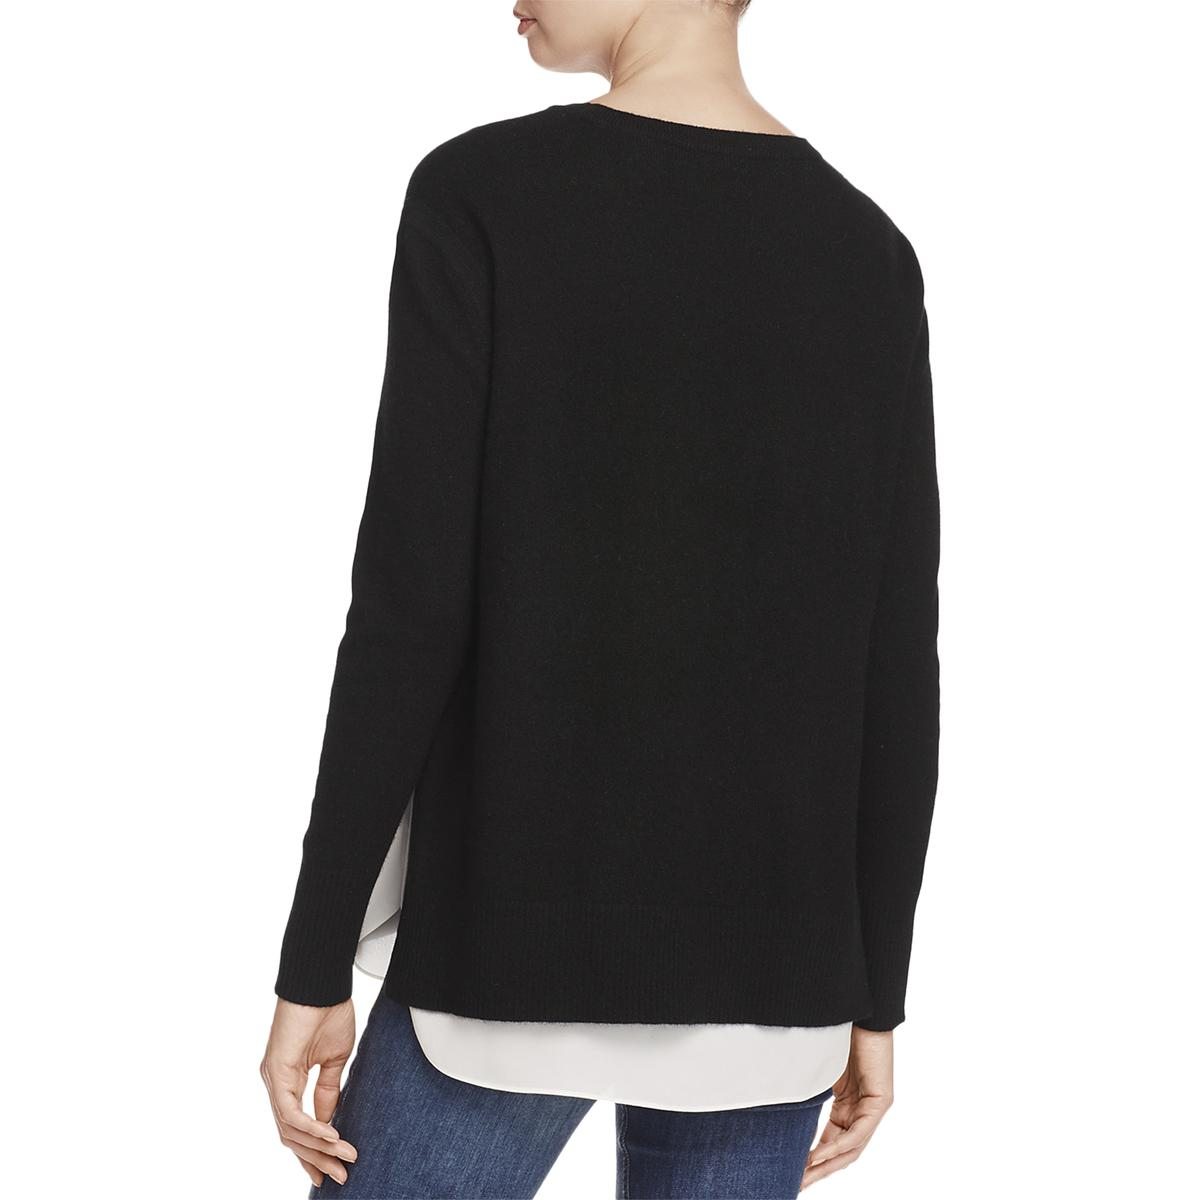 Crewneck Layered Private Cashmere Bhfo Label Blend Sweater 8104 Womens Pullover qwZgIPUZ